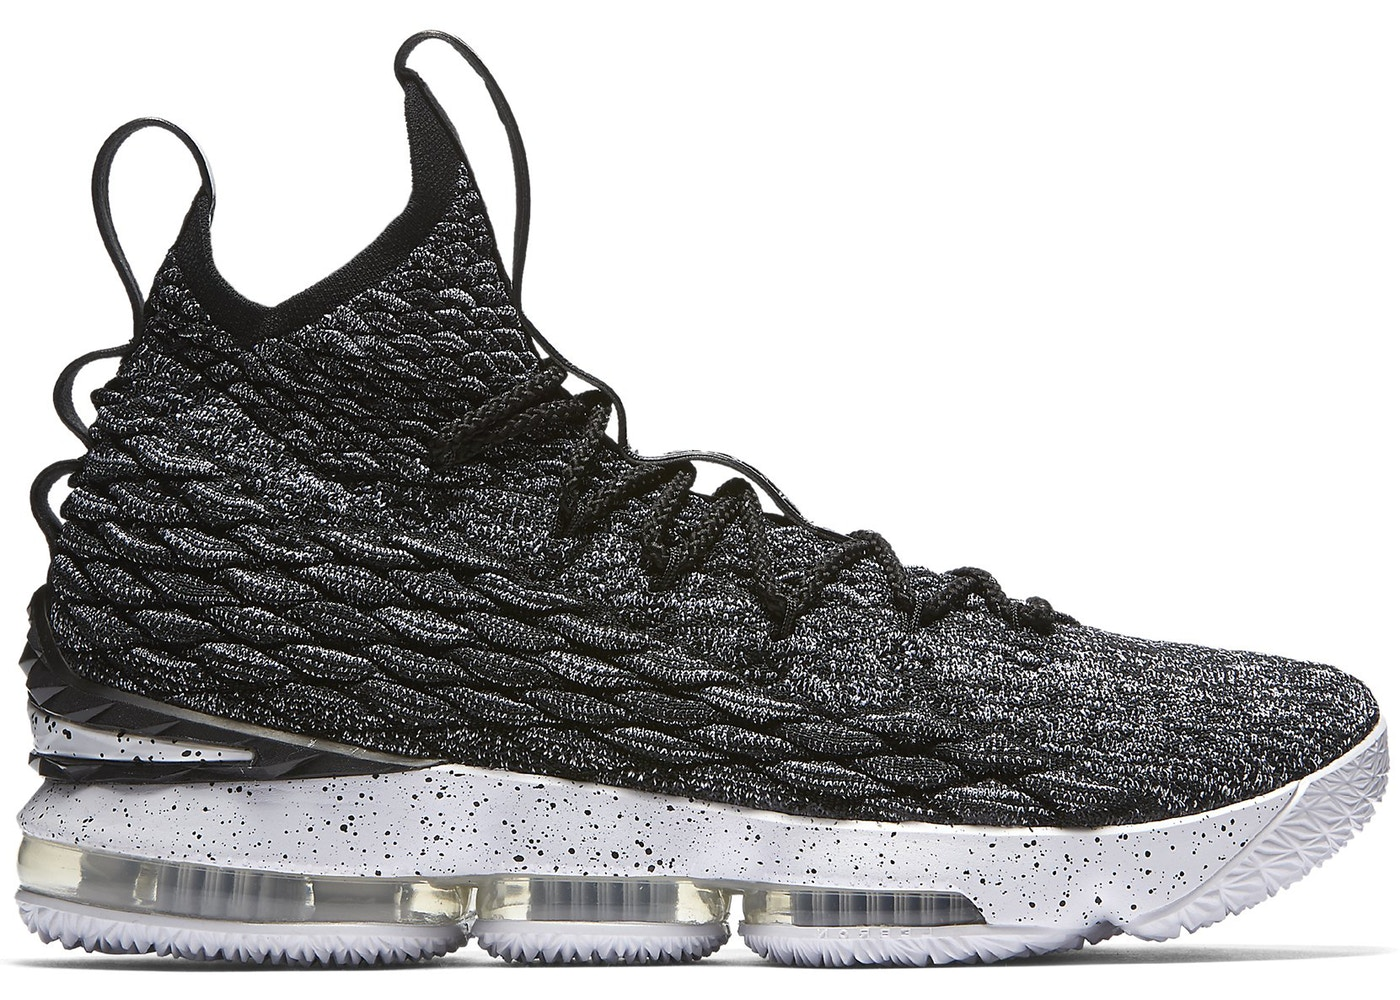 bfa459b236a7a Buy Nike LeBron 15 Shoes   Deadstock Sneakers